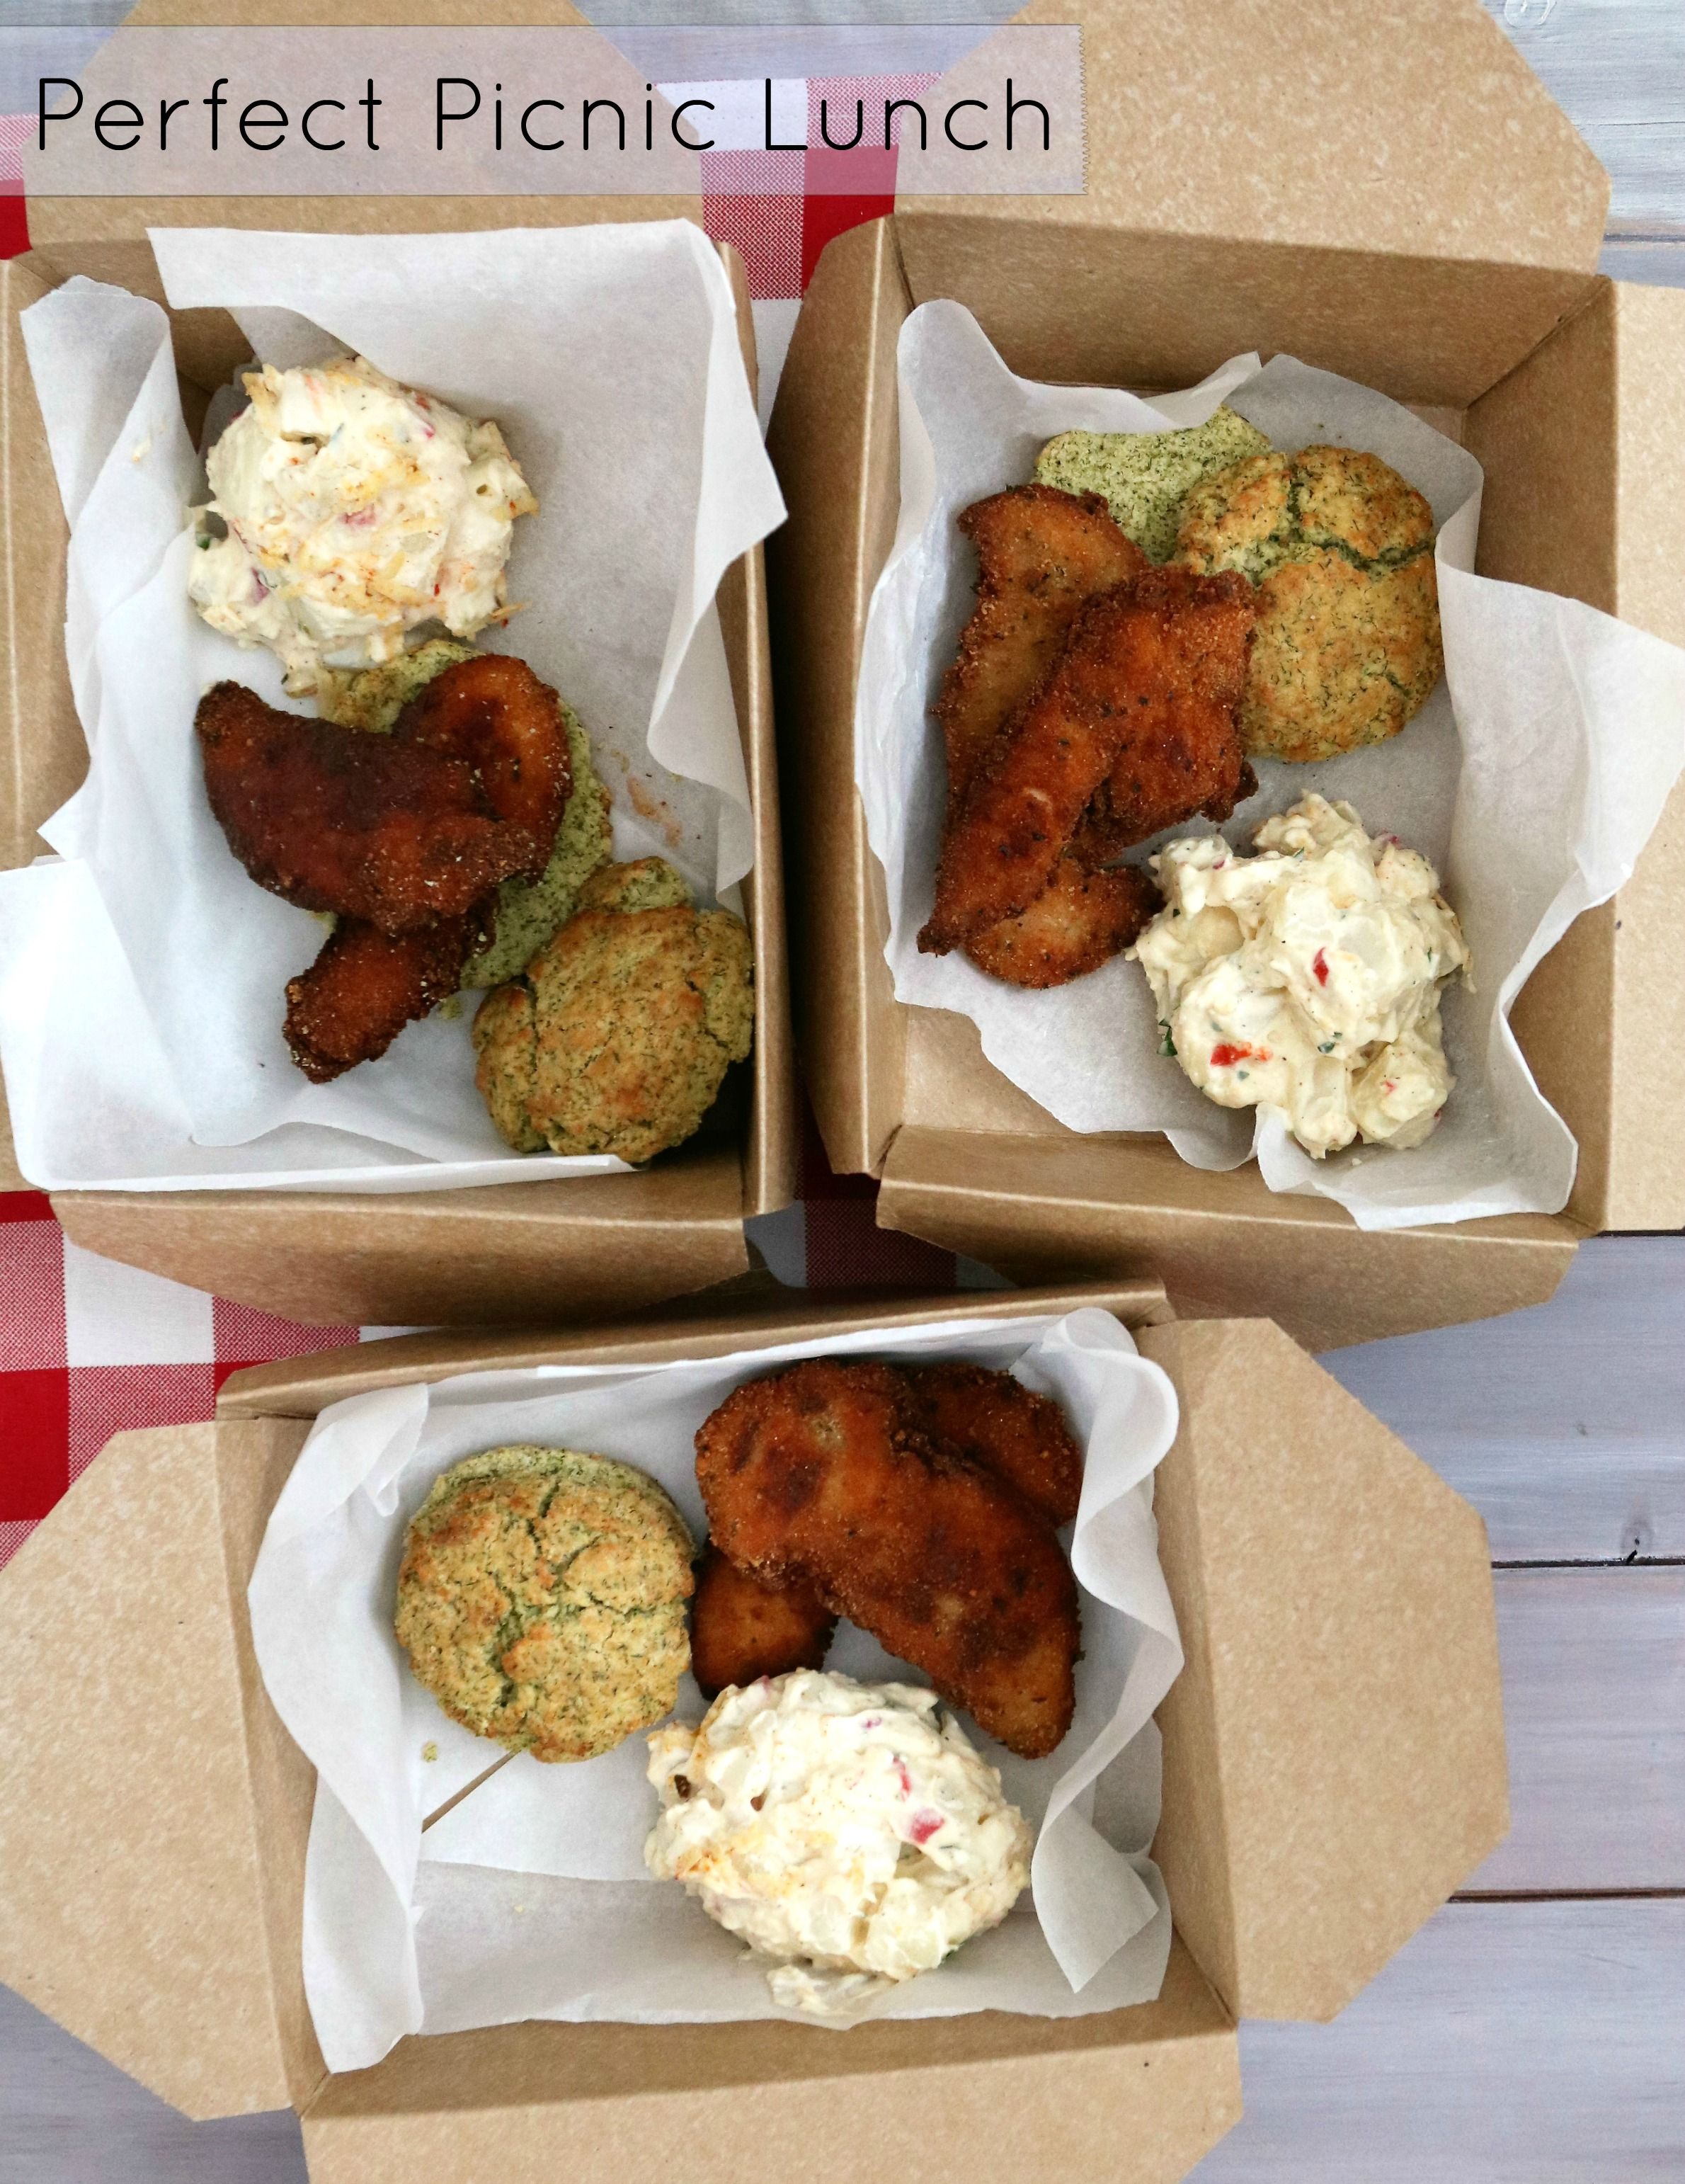 box lunches with chicken, biscuit and potato salad